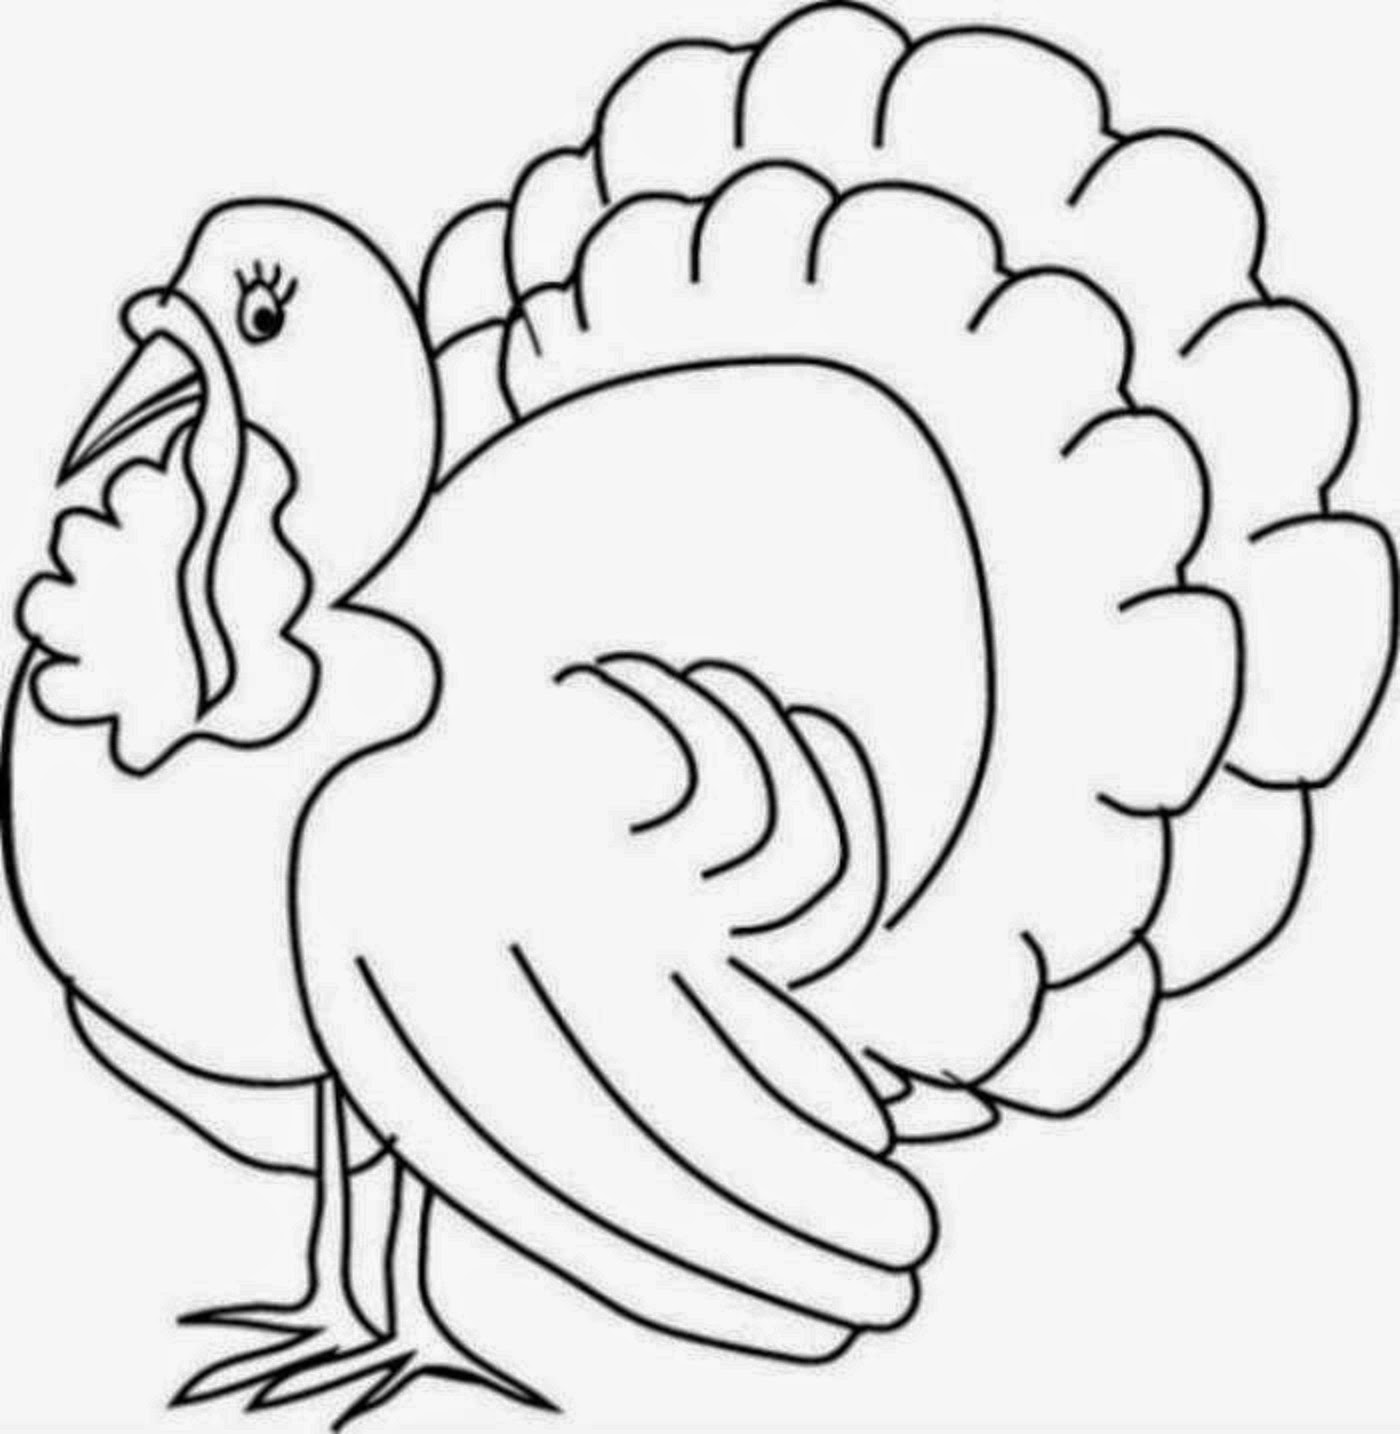 Colours drawing wallpaper printable thanksgiving coloring for Turkey coloring pages to print